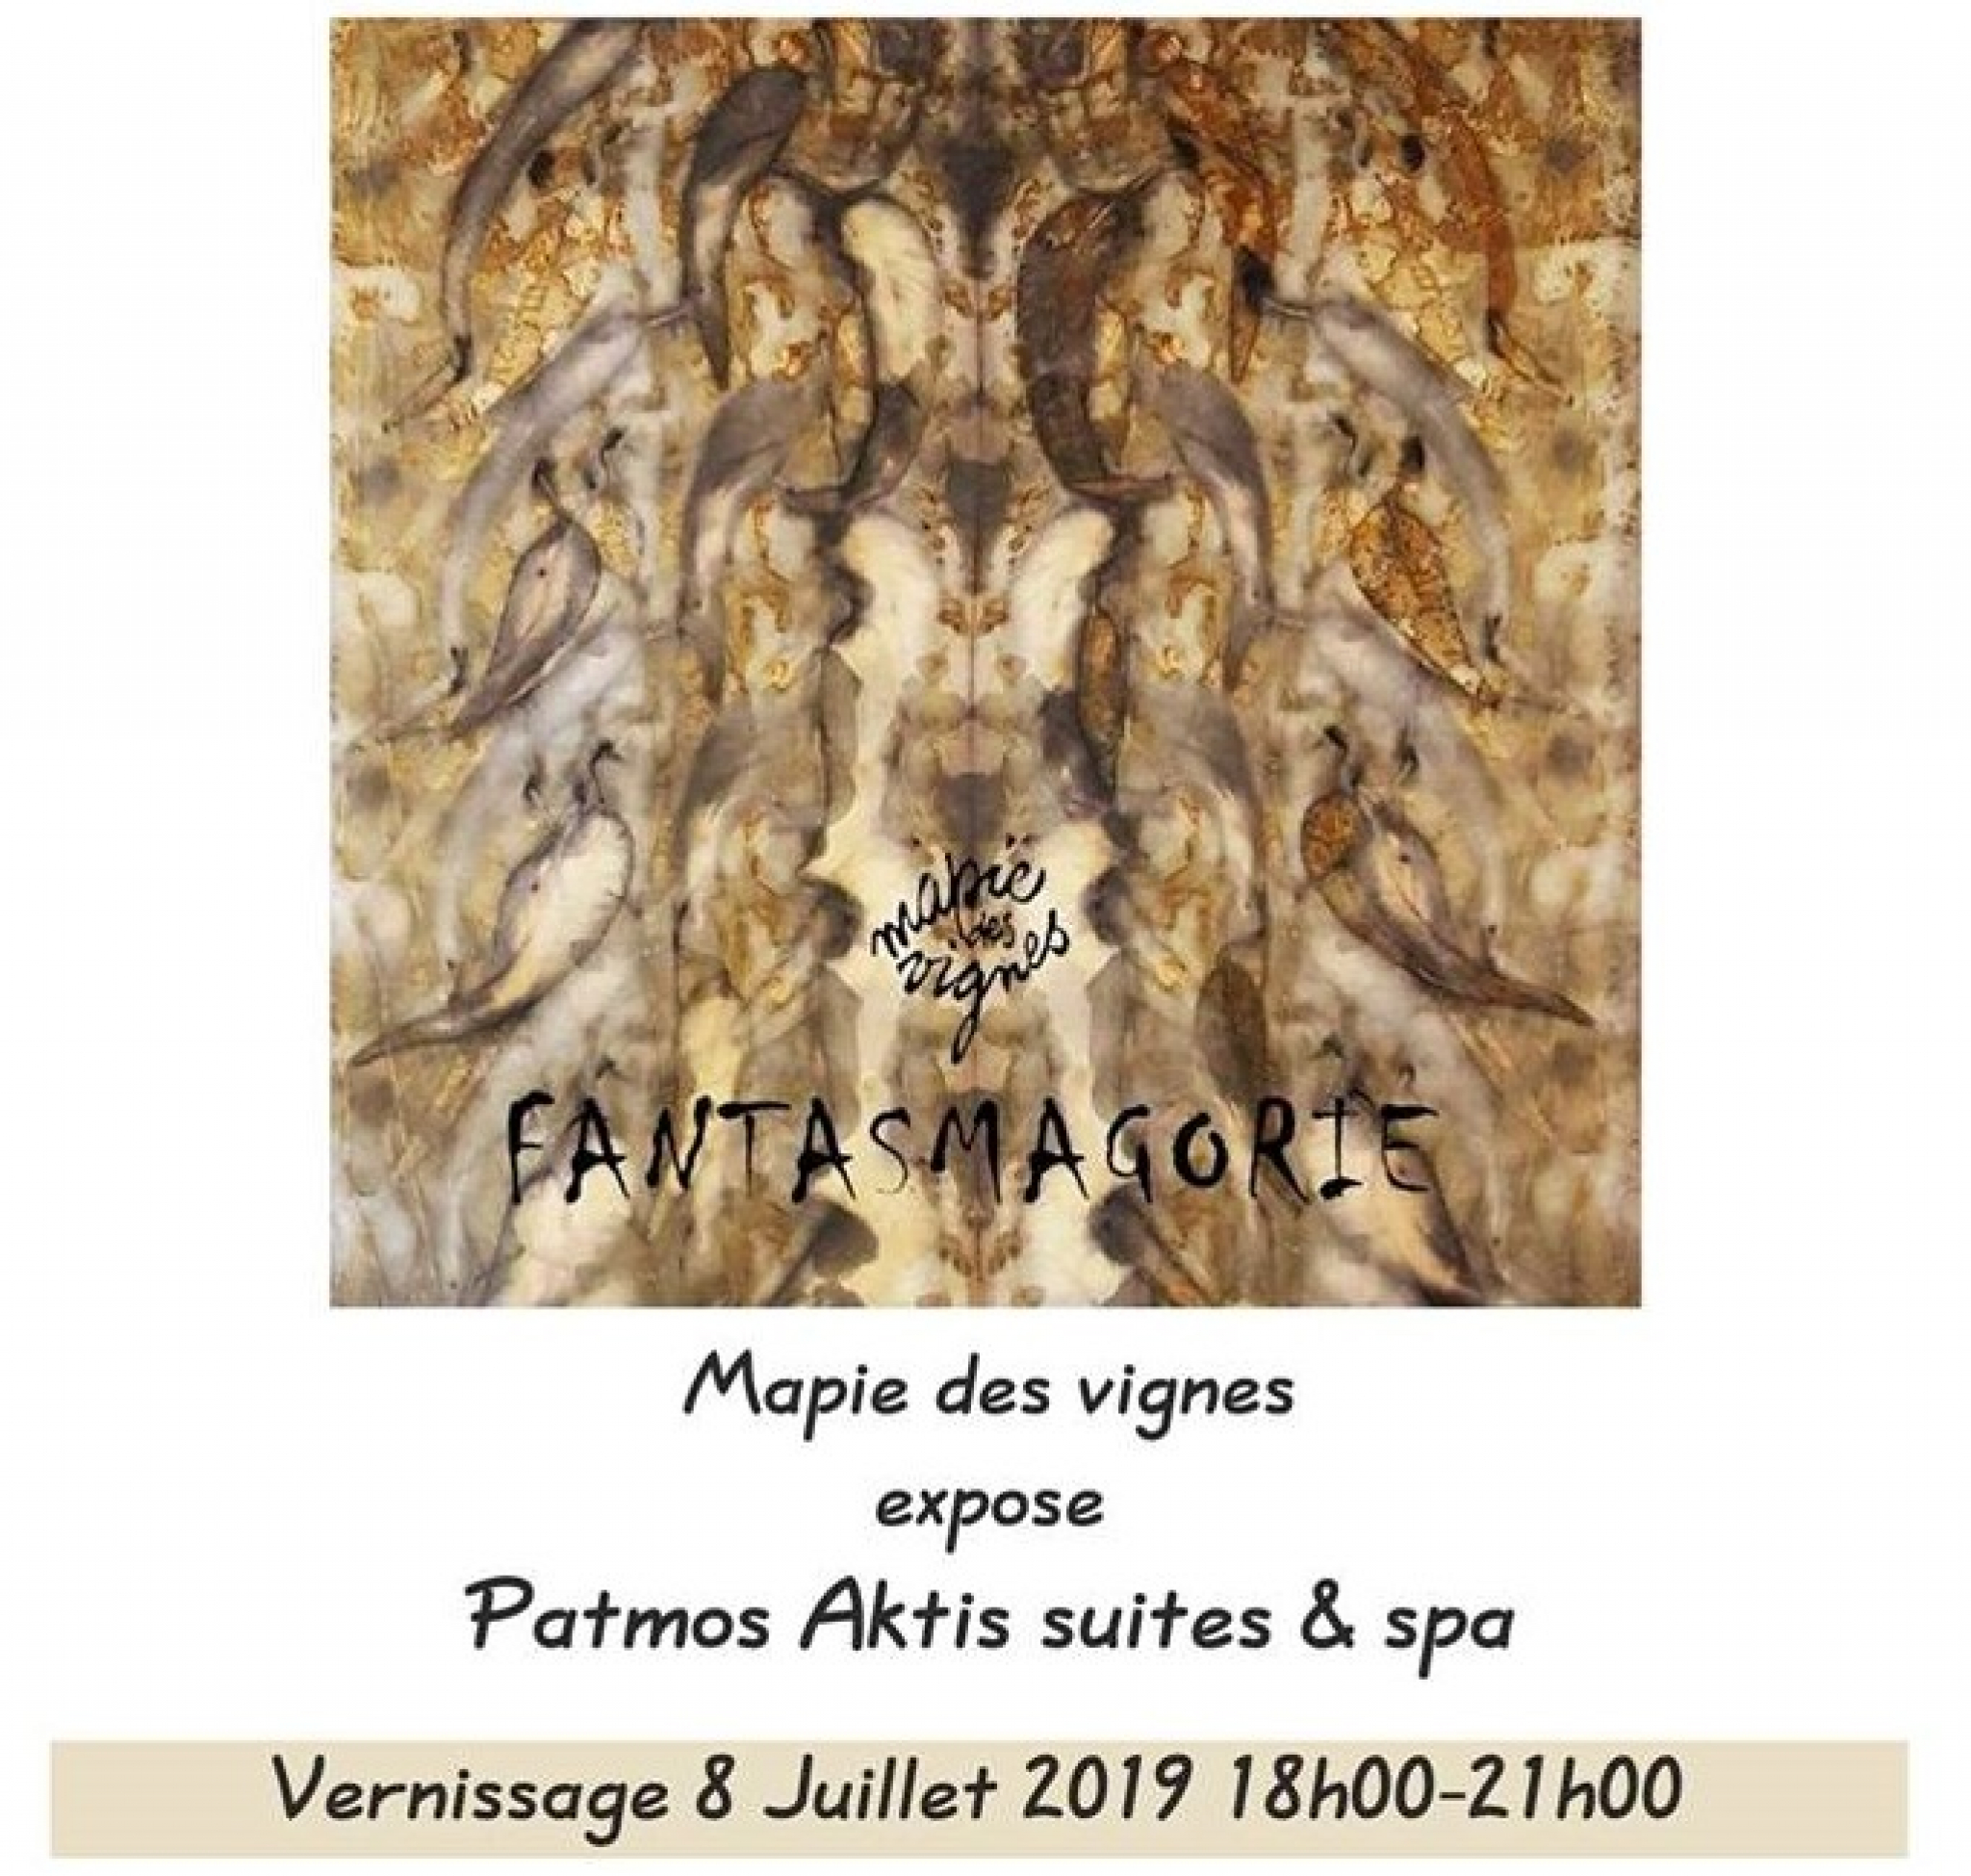 Opening of exhibition Fantasmagorie - Mapie des vignes, in Patmos Aktis Suties & Spa!